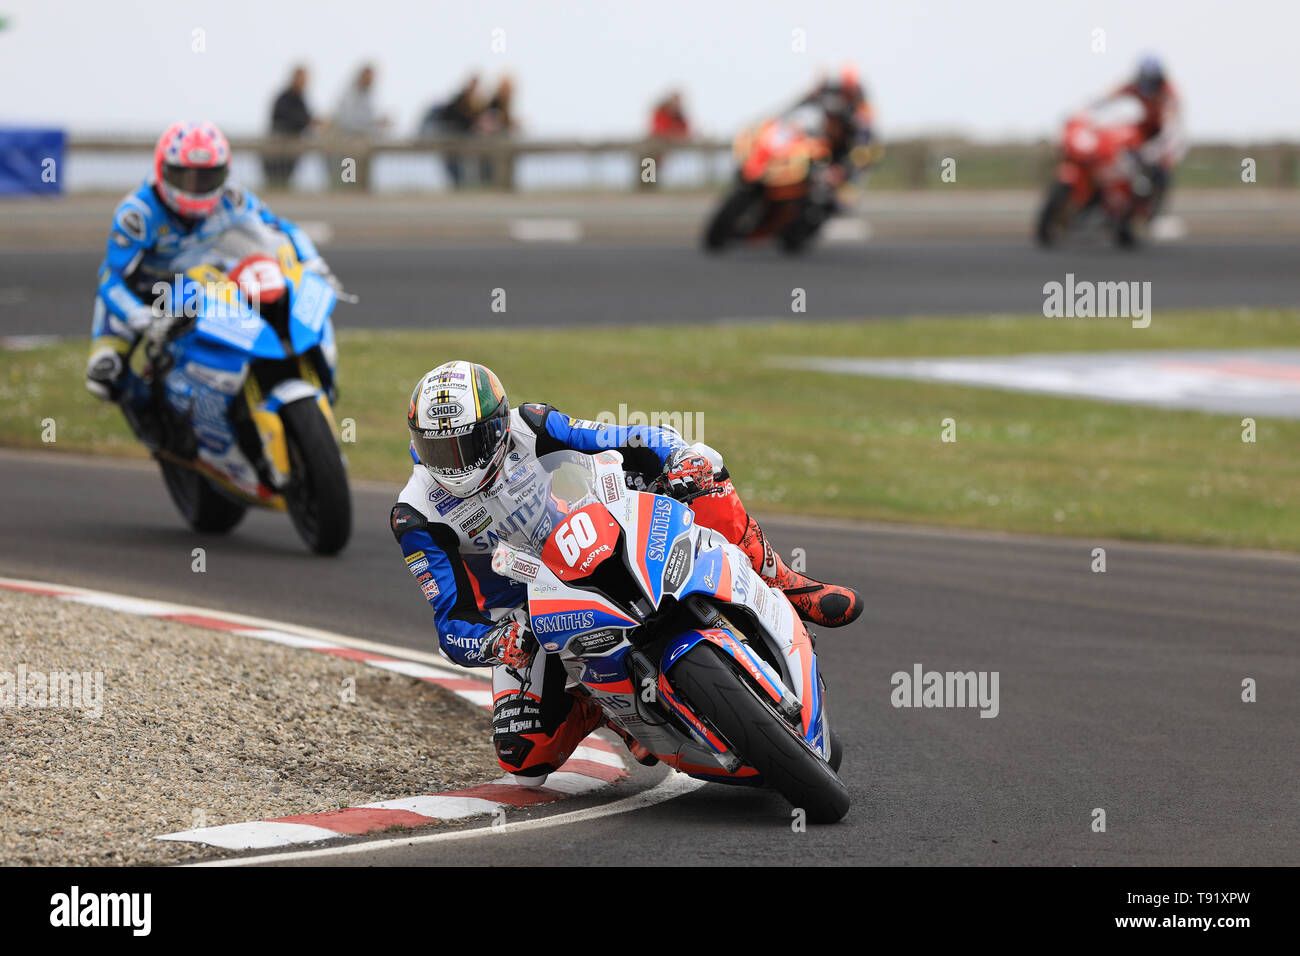 Portrush, Northern Ireland. 16th May, 2019. International North West 200 Motorcycle road racing, Thursday practice and evening racing; Peter Hickman goes fastest on the Smiths Racing BMW during the SuperSport qualifying session, before the session was red flagged Credit: Action Plus Sports/Alamy Live News - Stock Image